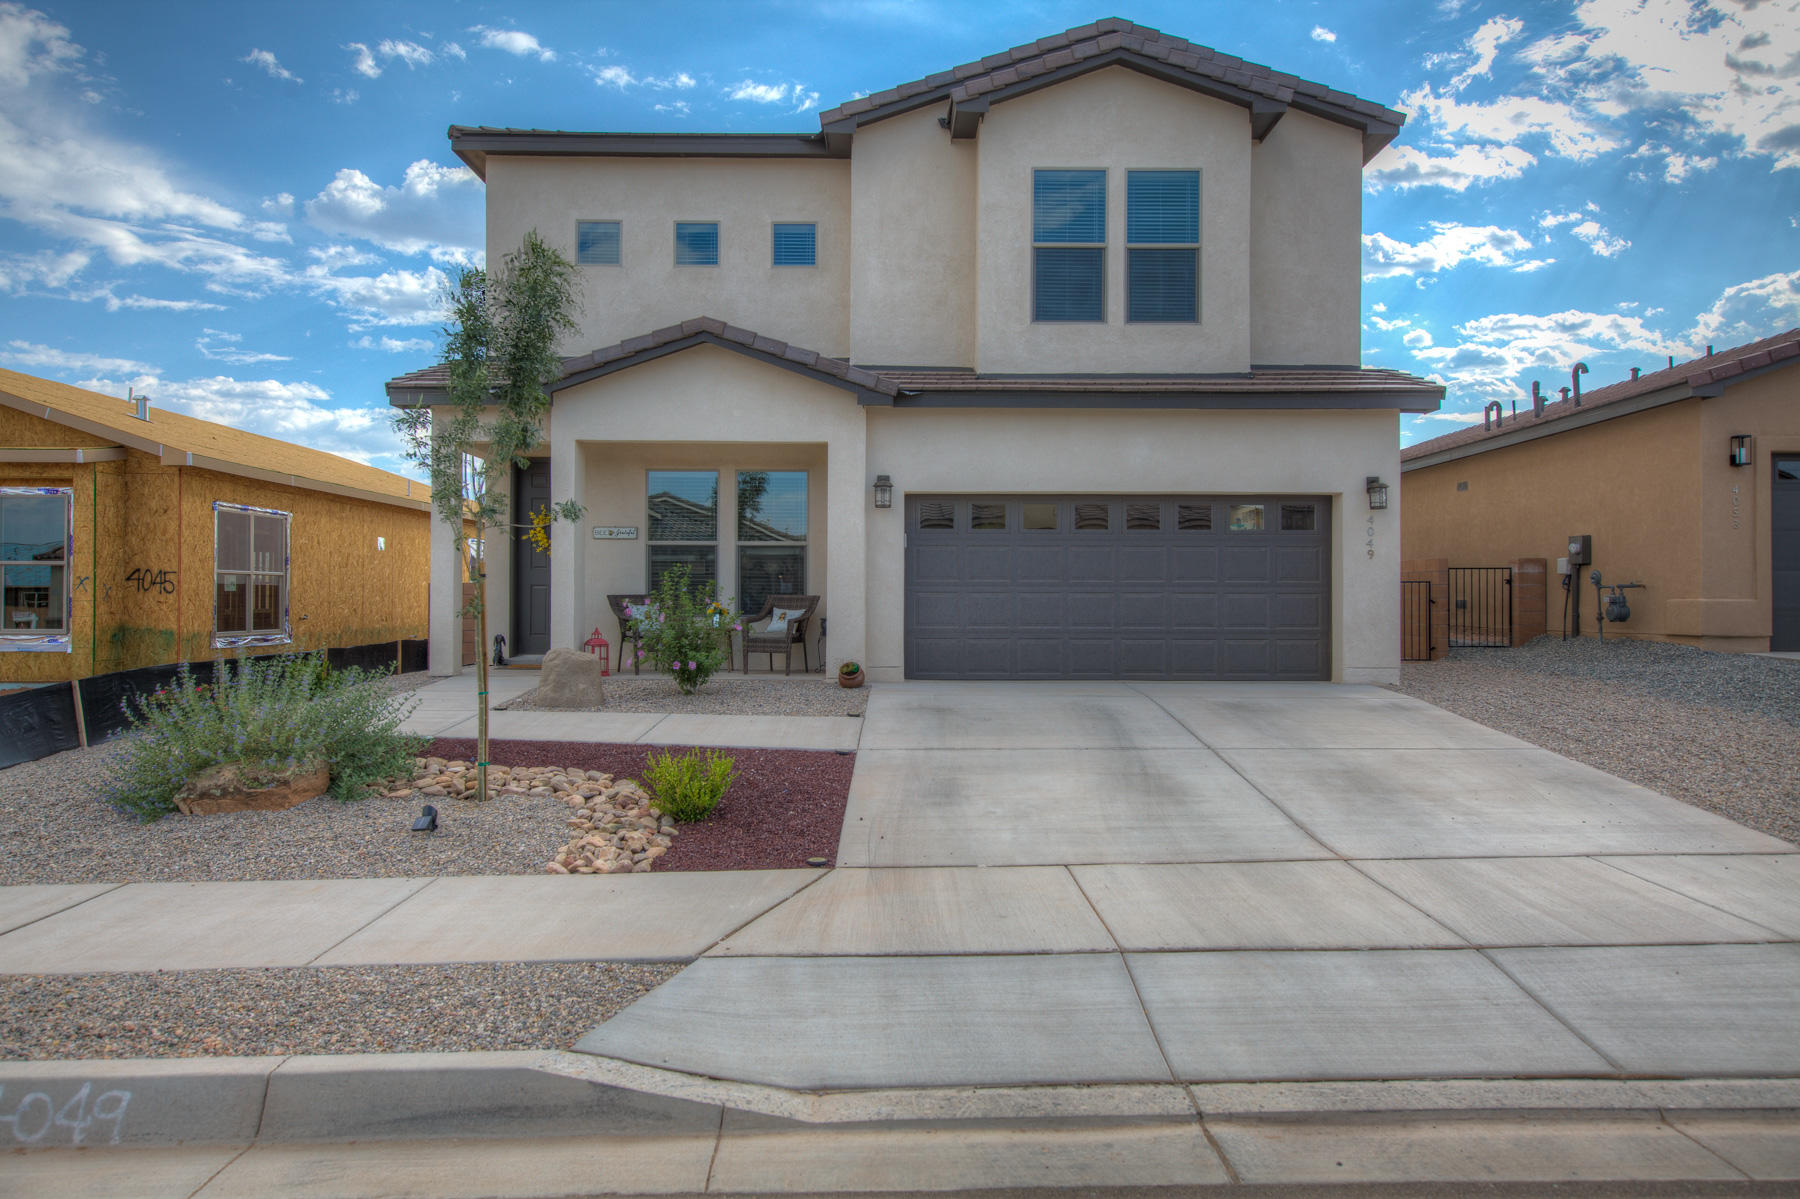 Stunning newer construction with lots of bells and whistles. Enjoy this open floor plan home with gorgeous kitchen lots of cabinets and storage. Beautiful grey cabinetry and stainless steel appliances, quartz counter tops, large island. Built in coffee bar, butlers pantry plus large walk in pantry. Tons of extra storage. Down stairs has office/ work out room or 5th bedroom. Up-stairs enjoy 4 bedrooms with great owners suite glamours spa like bathroom with big walk in shower. His her sinks, large walk in closets. one of the secondary bedrooms has it's own bathroom perfect for teen or in-law. The other secondary bedroom has access to shared bath directly from the room. Shows like a model home. Fully landscaped with views of the mountains sit outside under the gazebo. Make this a must see.